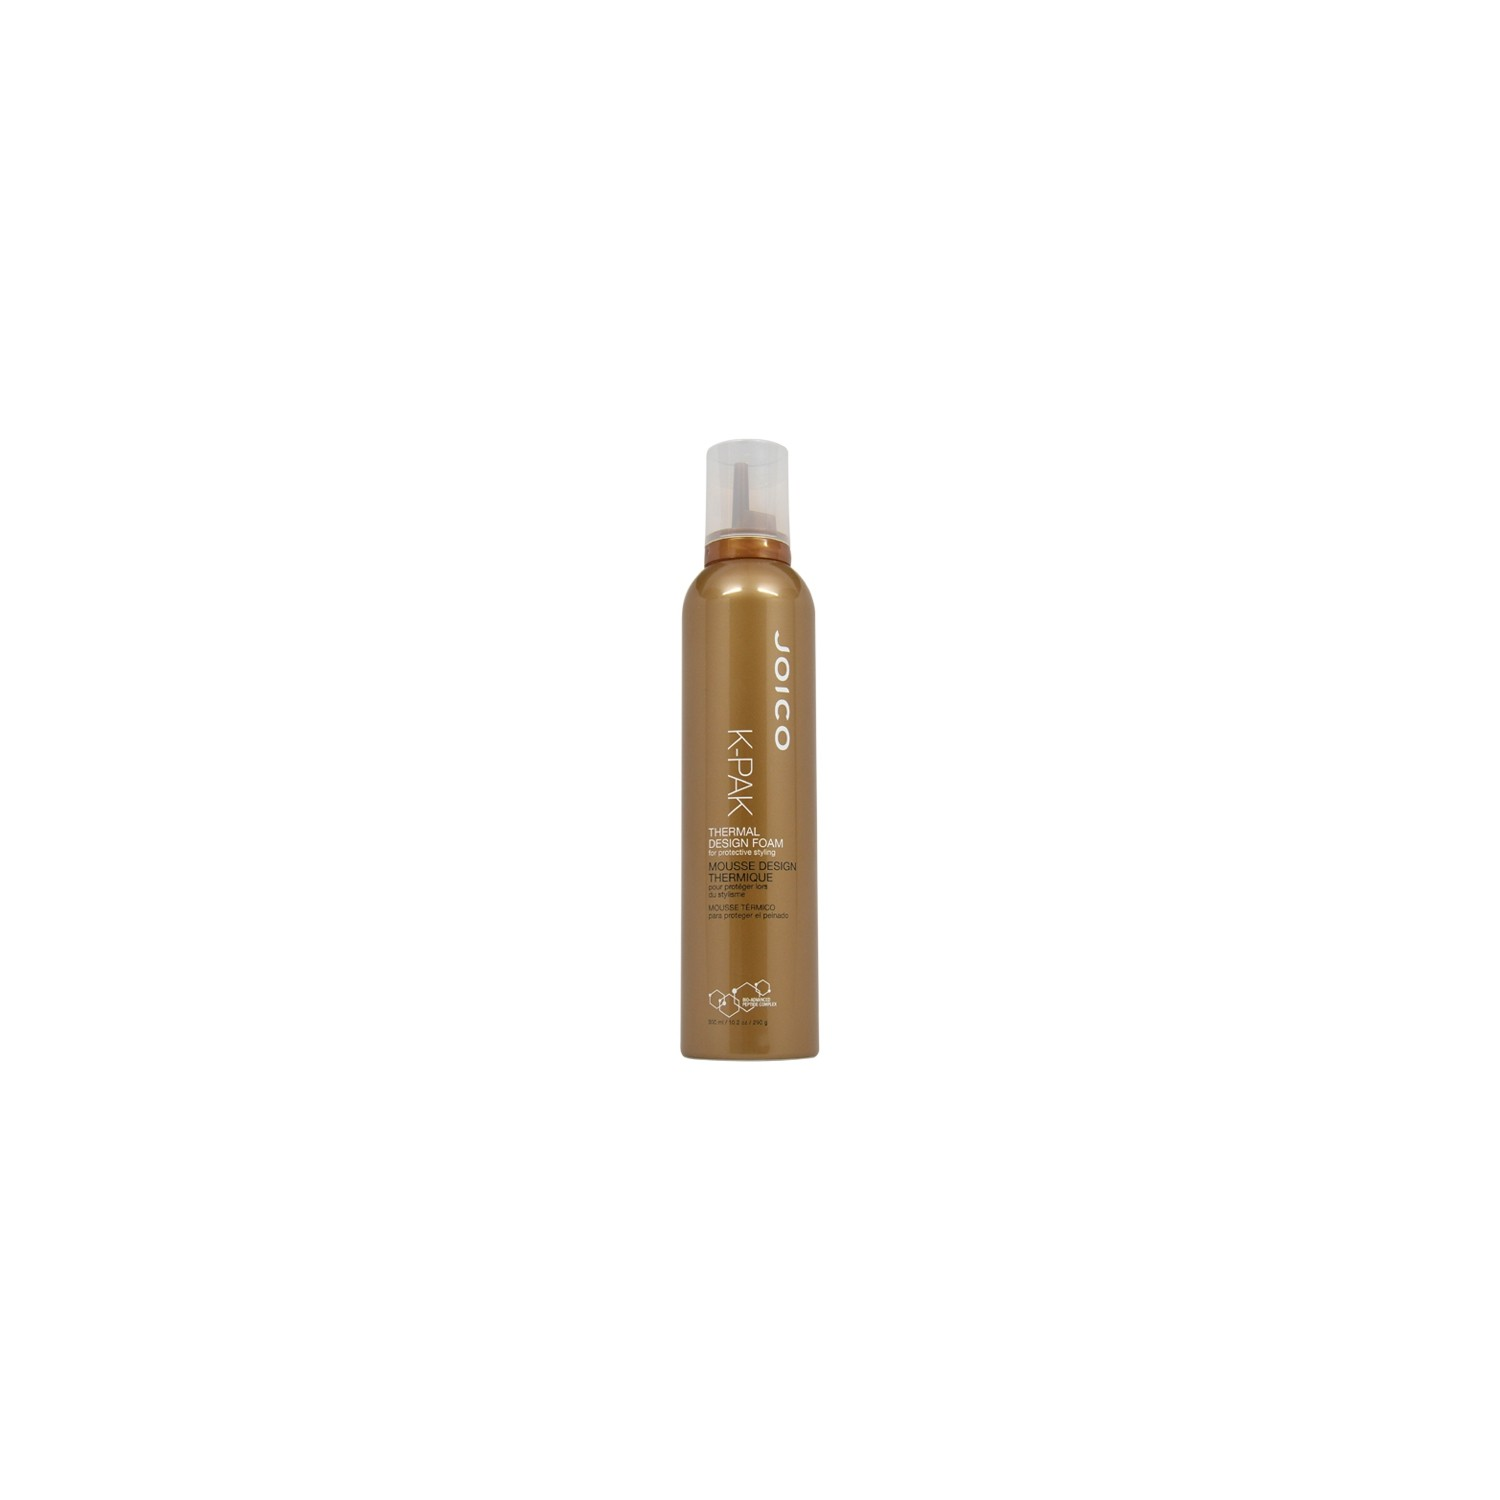 K Pak Thermal Design Foam By Joico For Unisex 102 Oz Mousse